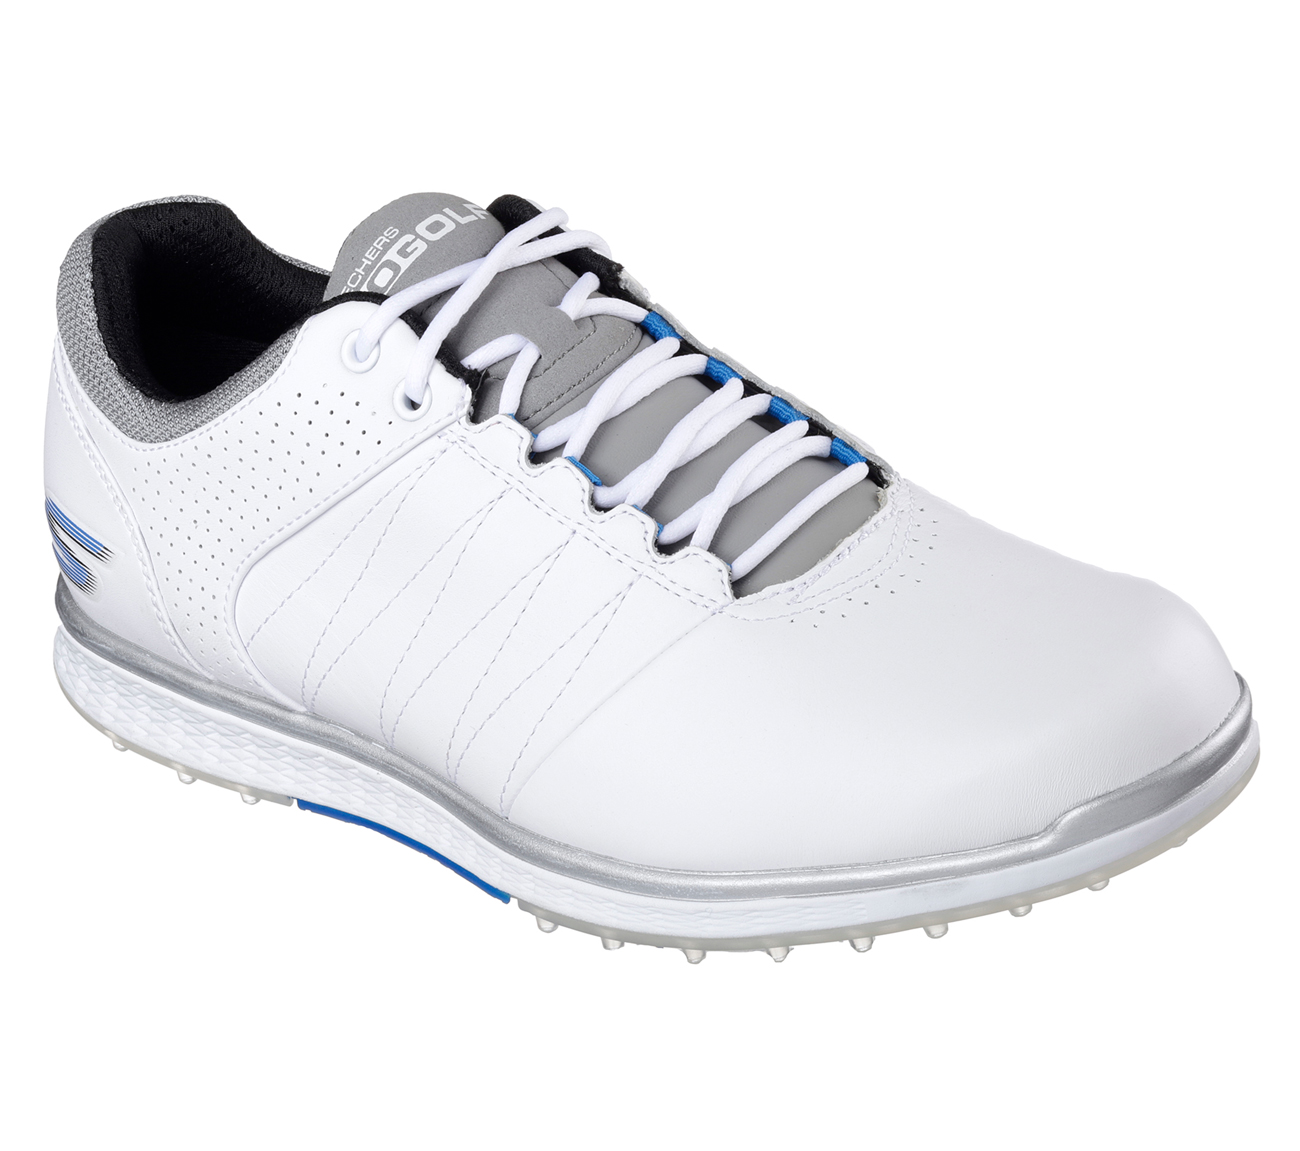 Sketchers Men's Go Golf Elite 2 Golf Shoe - White